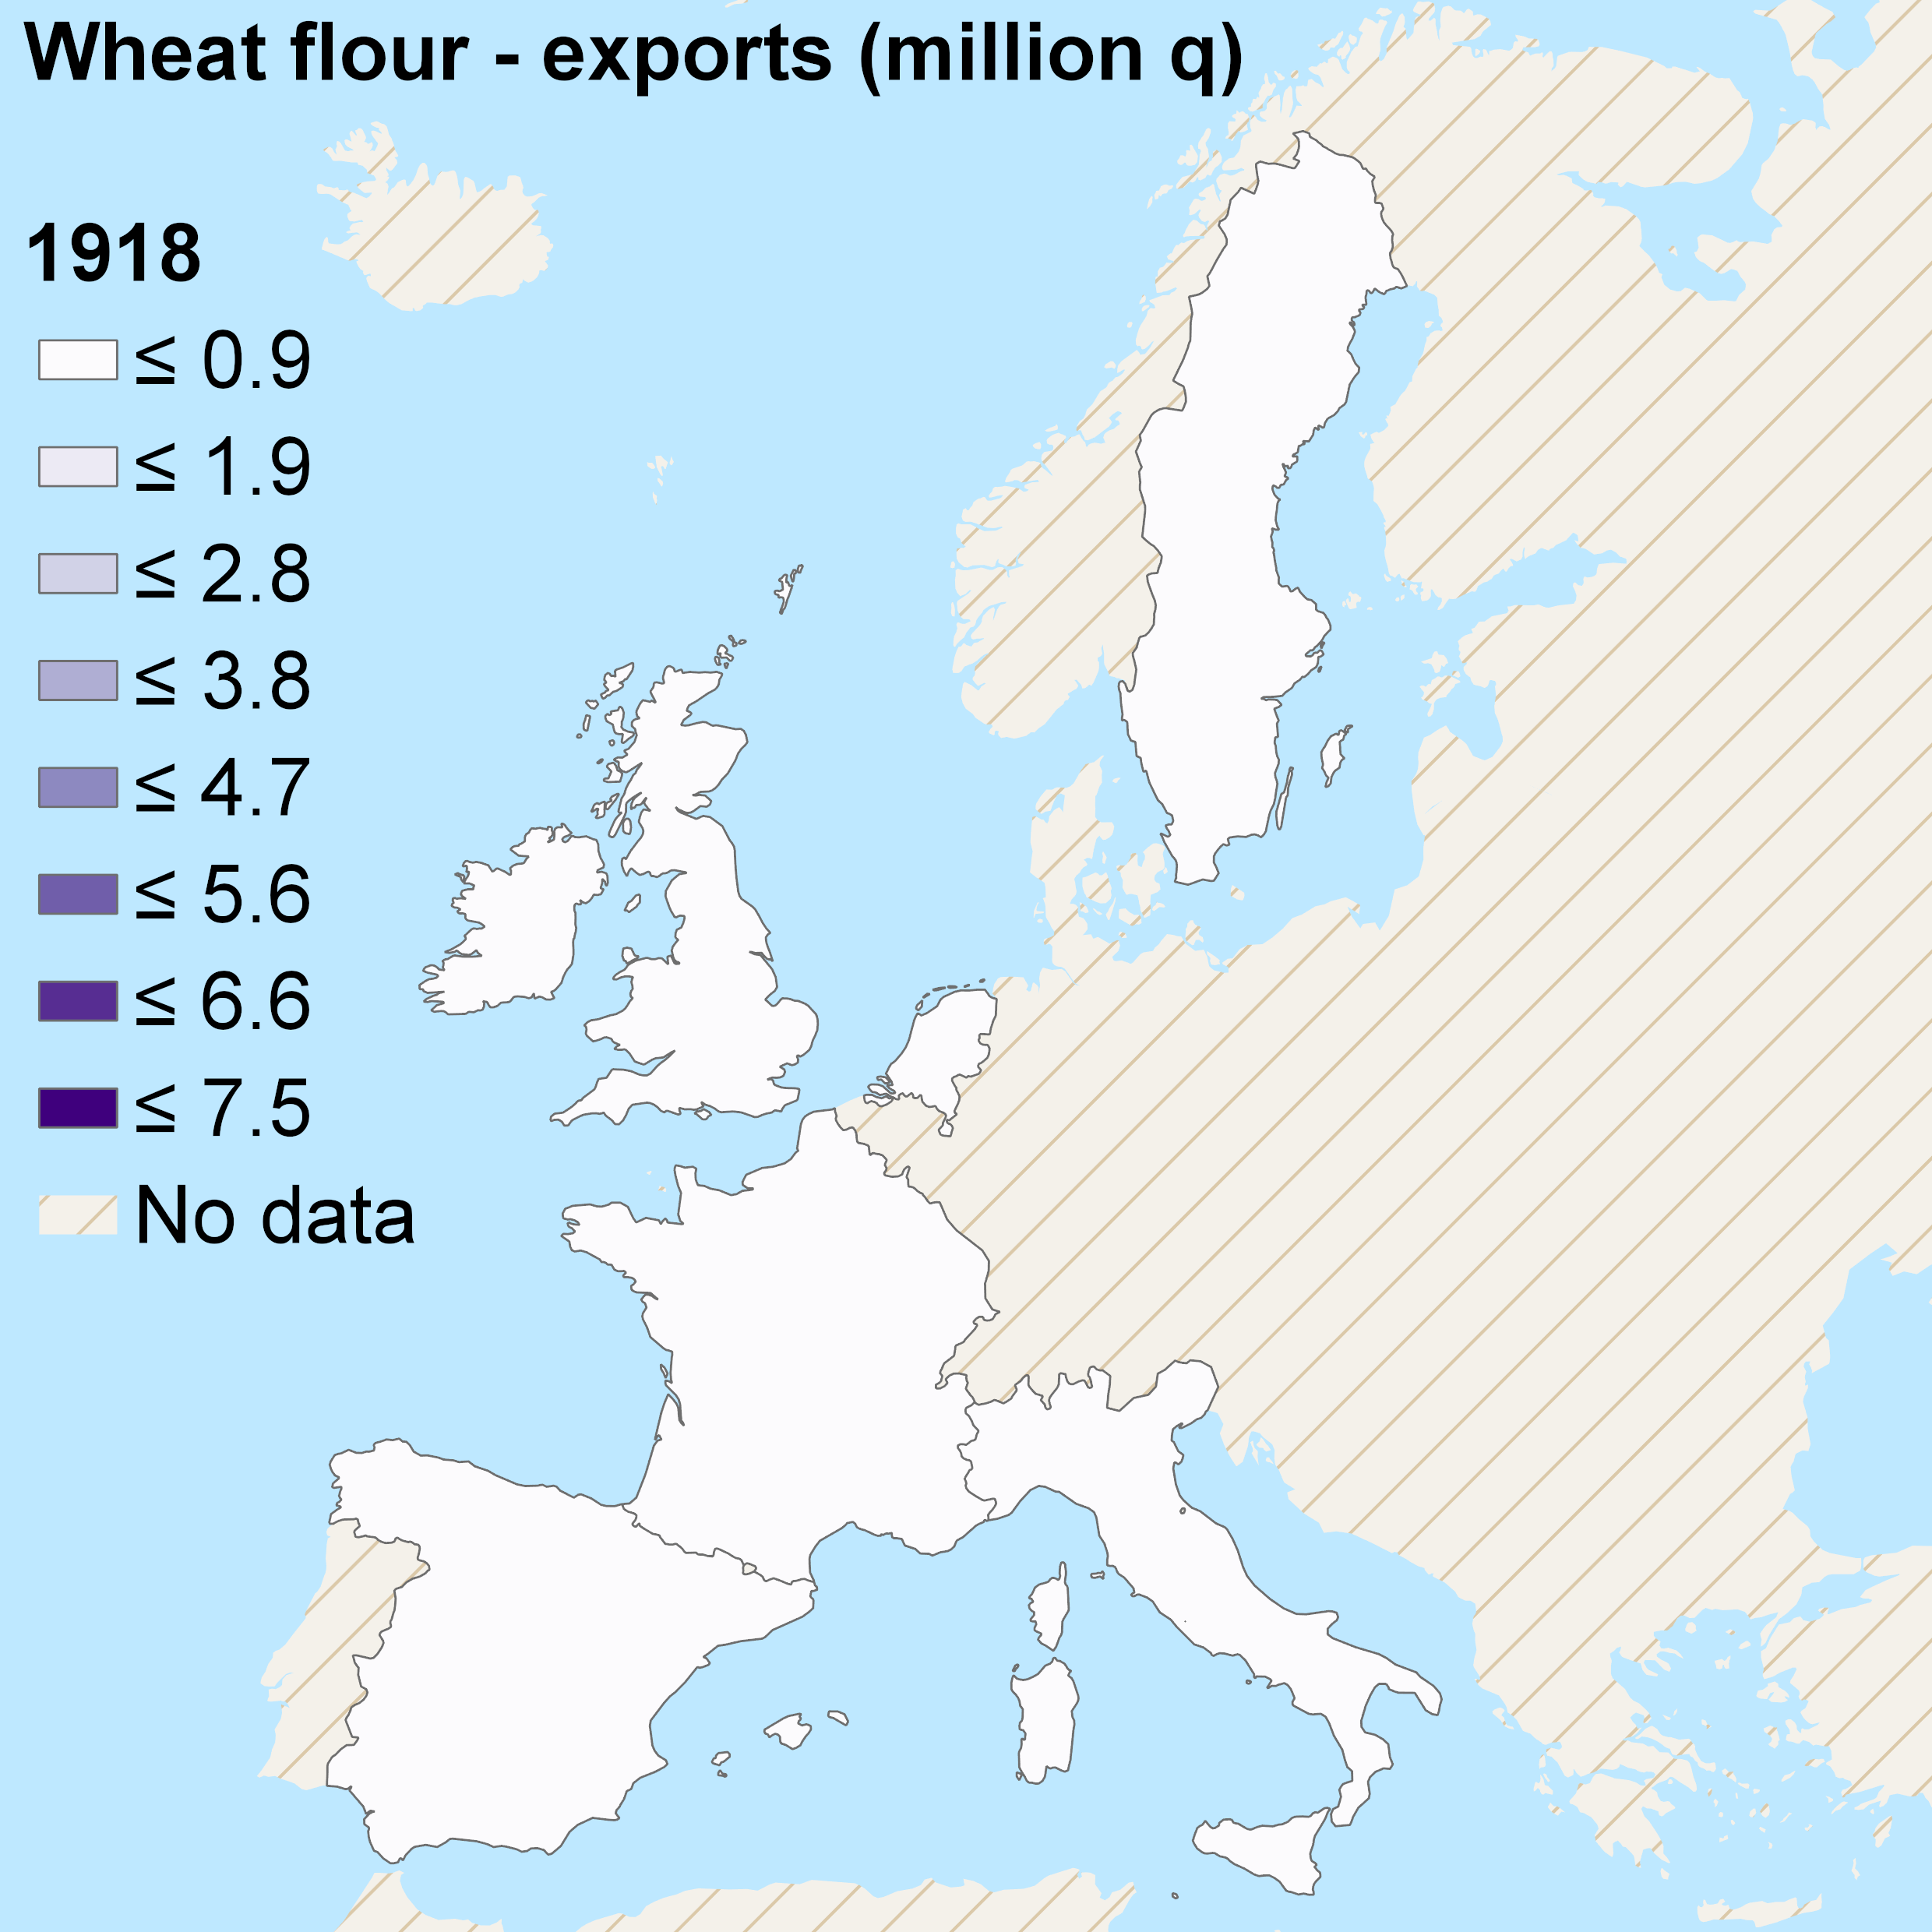 wheat-flour-exports-1918-v2